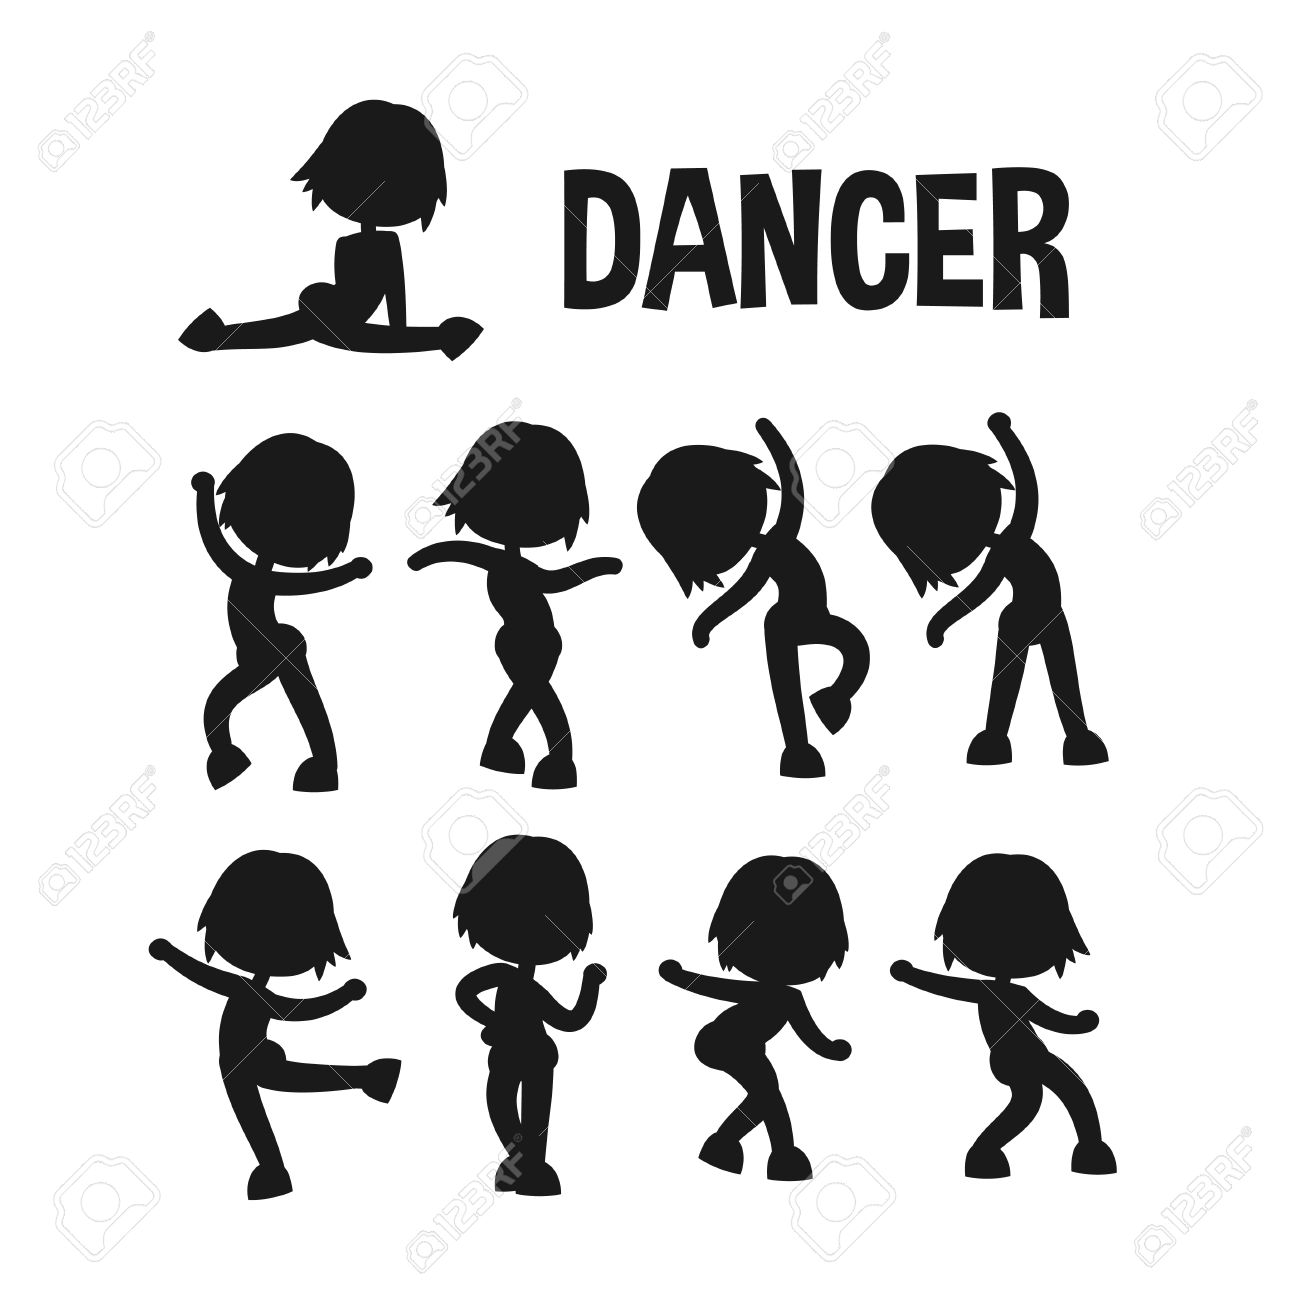 Different Poses Dancer Silhouette Set Cartoon Flat Kid Style Character Vector Illustration